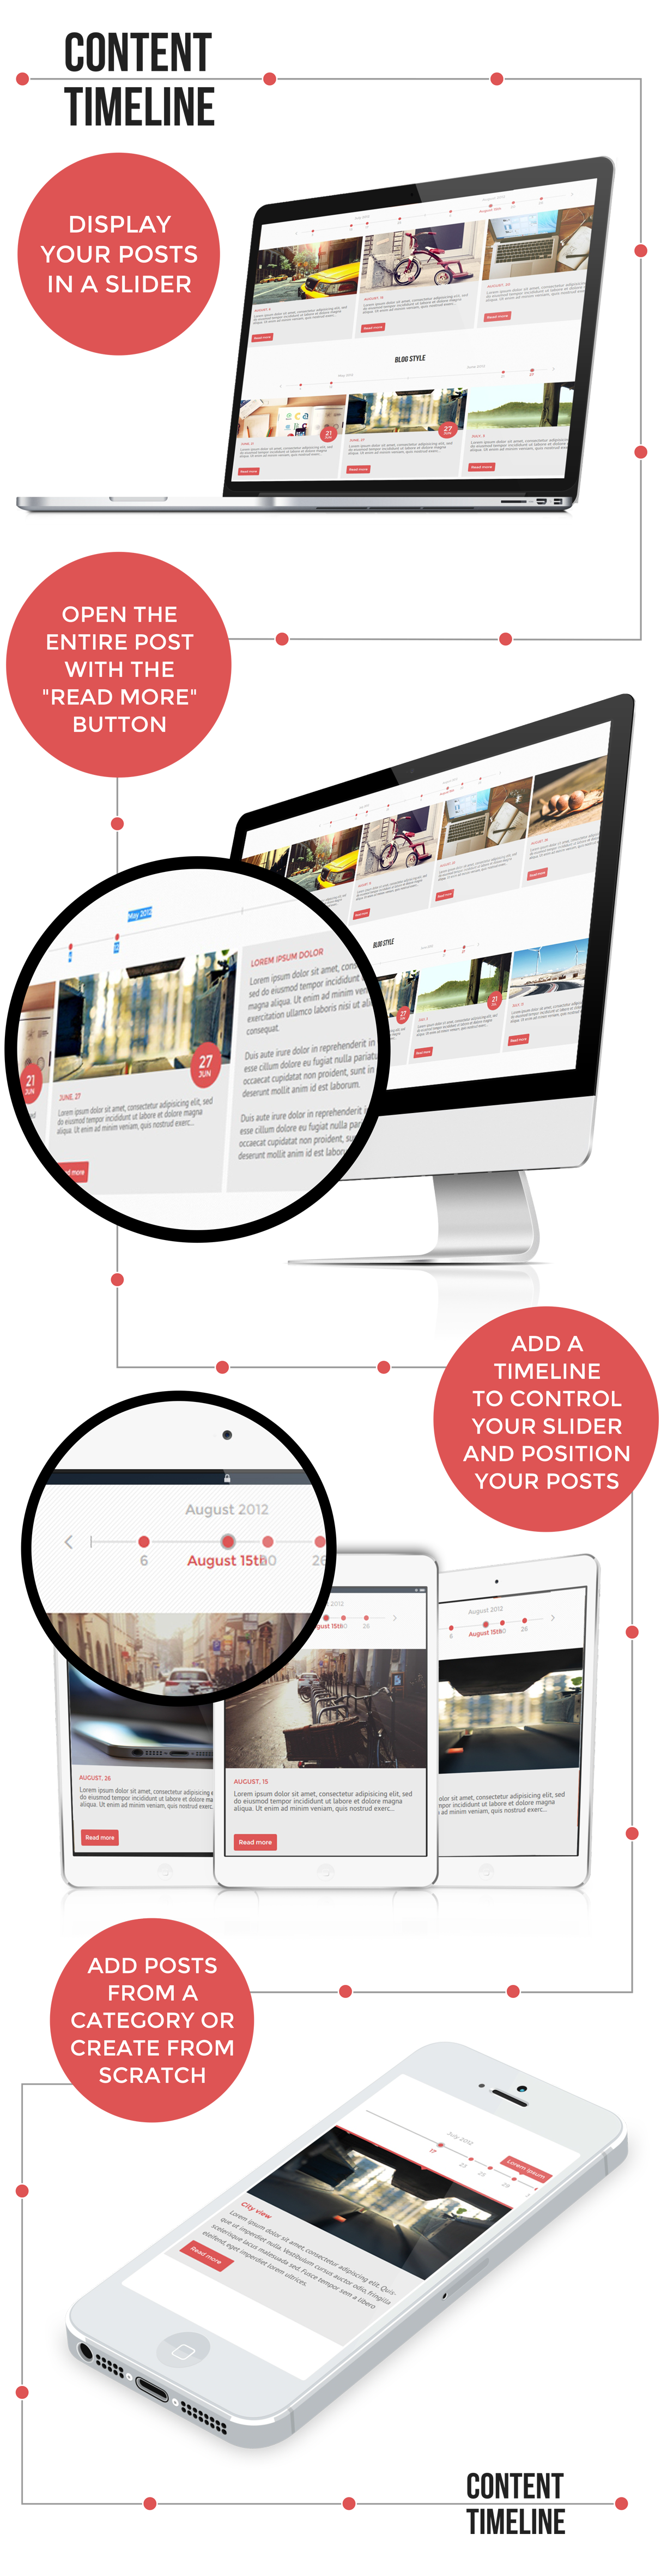 content6 - Content Timeline - Responsive WordPress Plugin for Displaying Posts/Categories in a Sliding Timeline